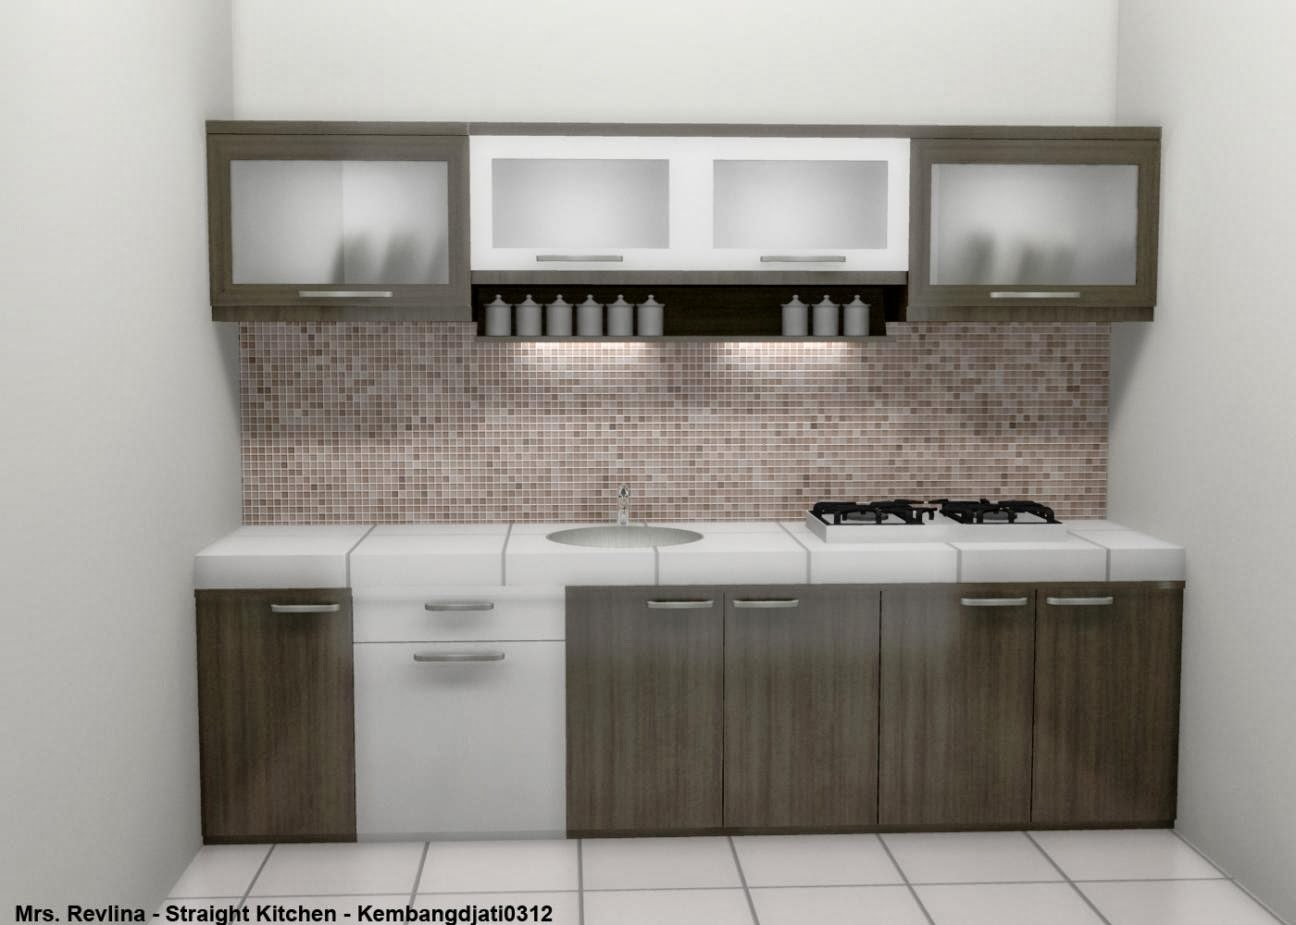 Kombinasi warna keramik dinding dapur best attractive home for Harga kitchen set minimalis per meter